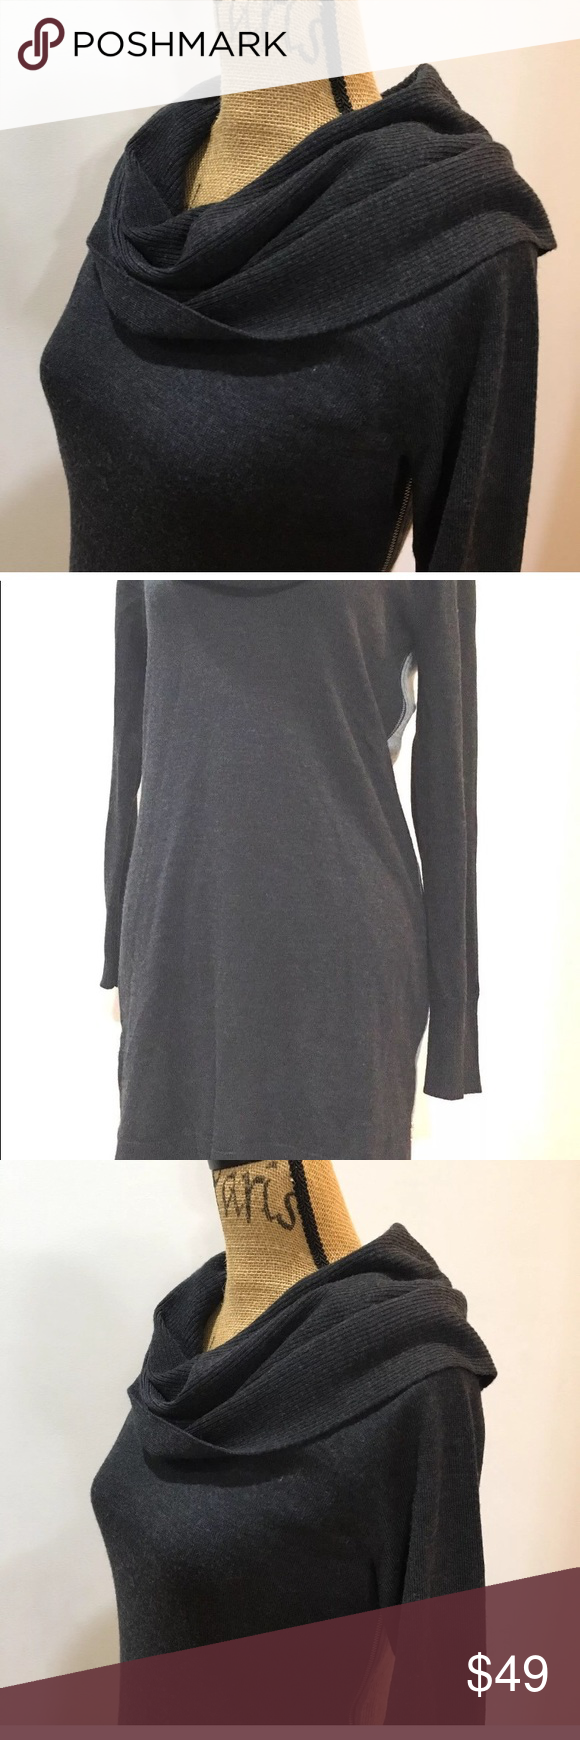 42557f1740b Cynthia Rowley Merino Wool Sweater Dress Tunic Sm. NWOT Cynthia Rowley 100%  Extrafine Merino